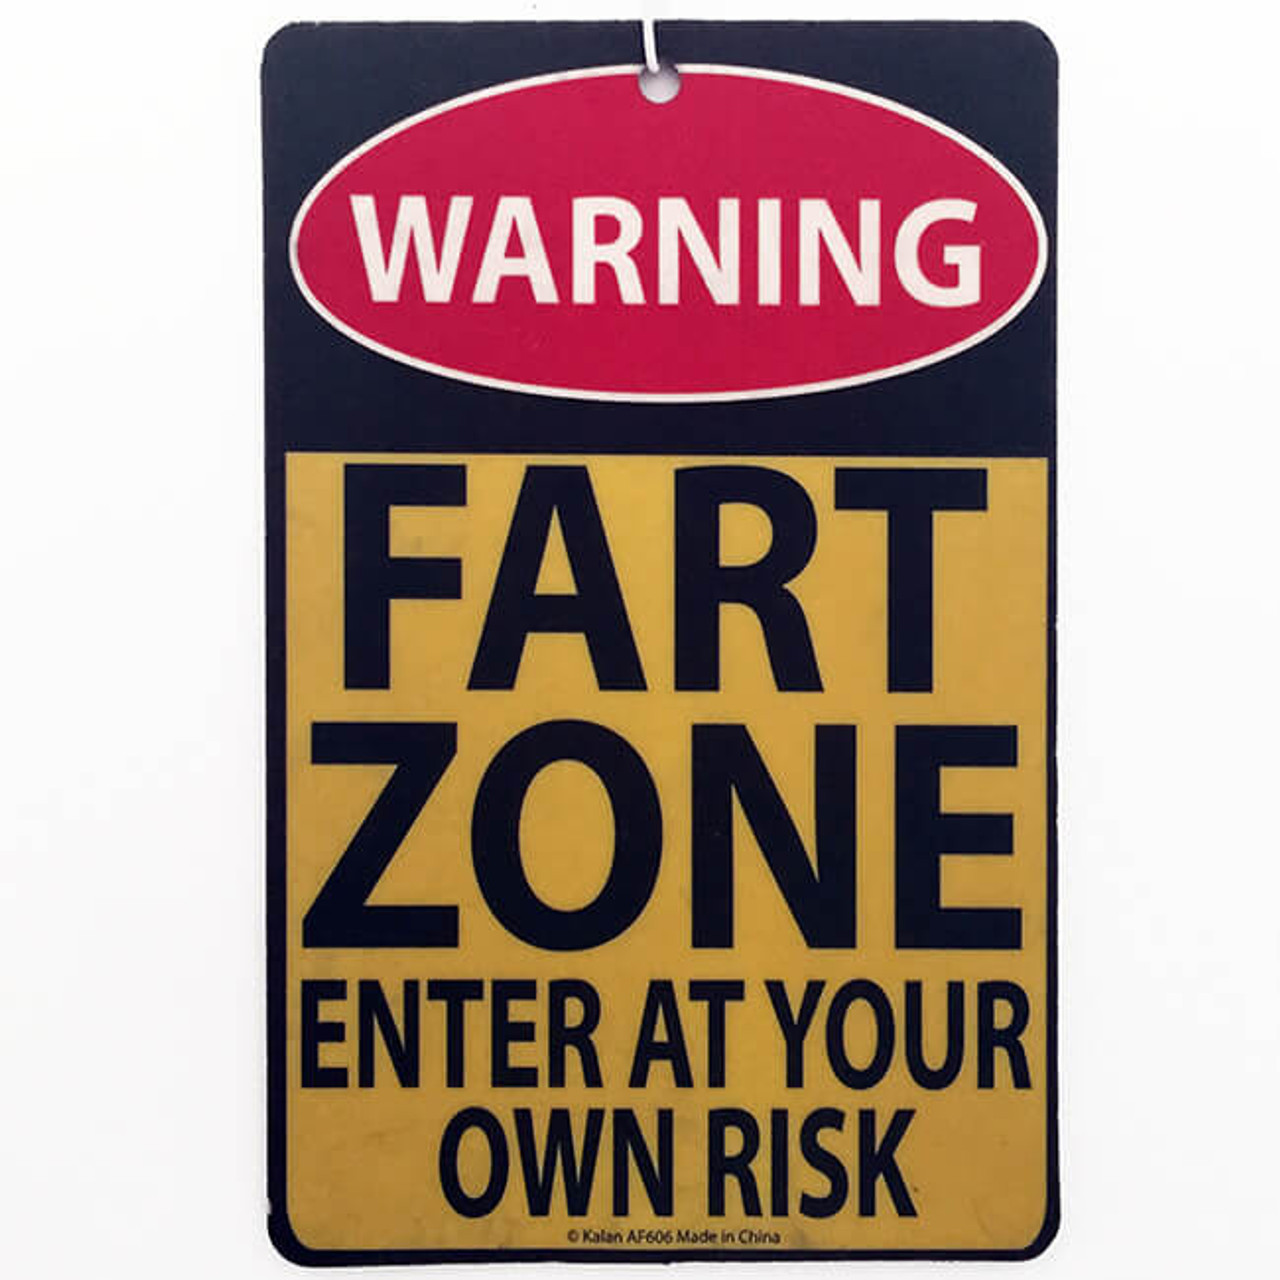 FART ZONE AIR FRESHENER